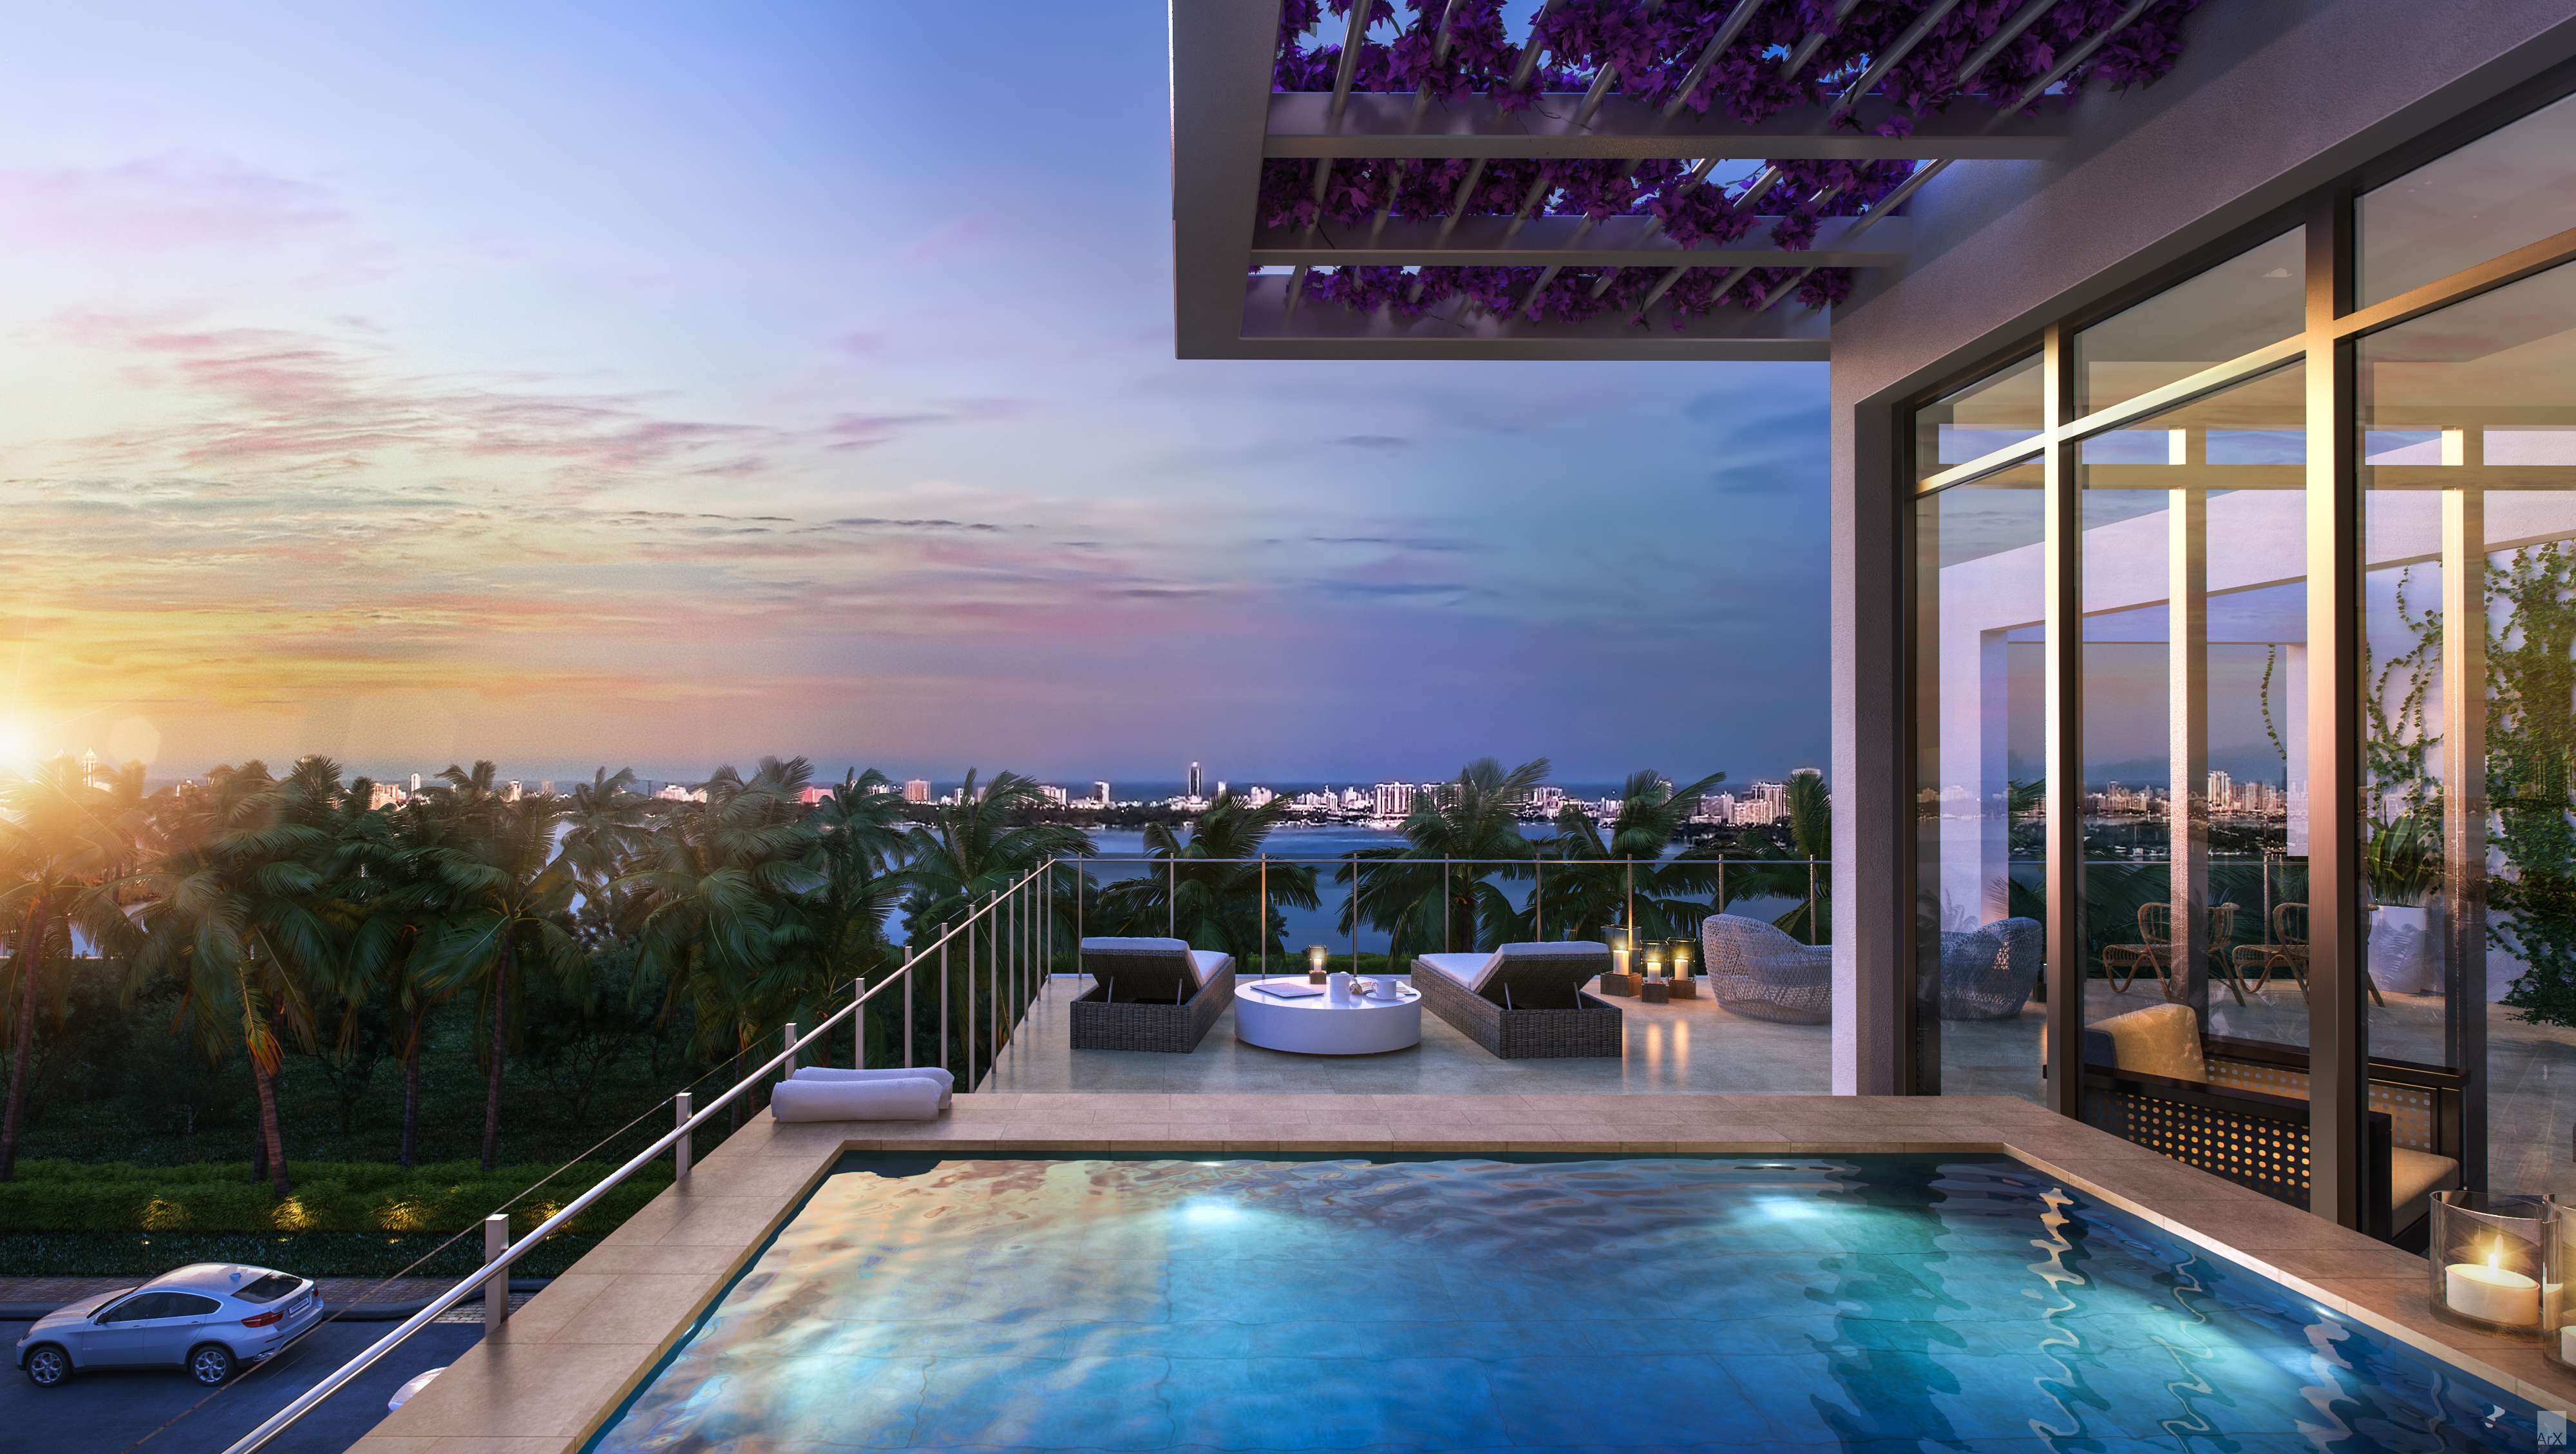 Modern Luxury Penthouses Miami Luxury Condos At Granparaiso Miami Penthouses For Sale